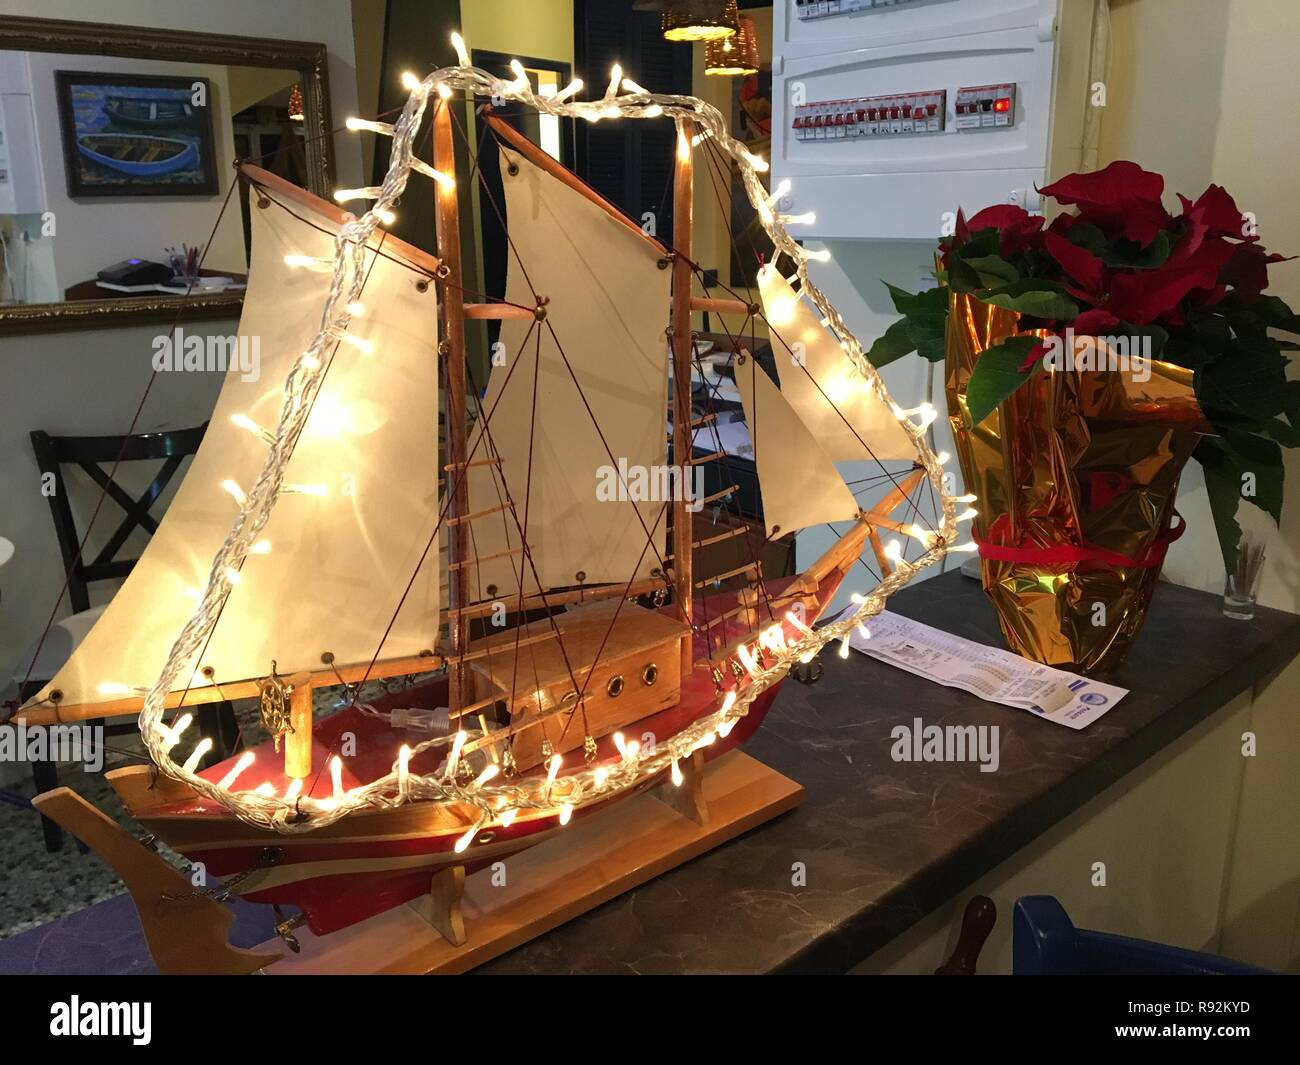 Athen Greece 08th Dec 2018 A Boat Decorated With Christmas Lights Stands